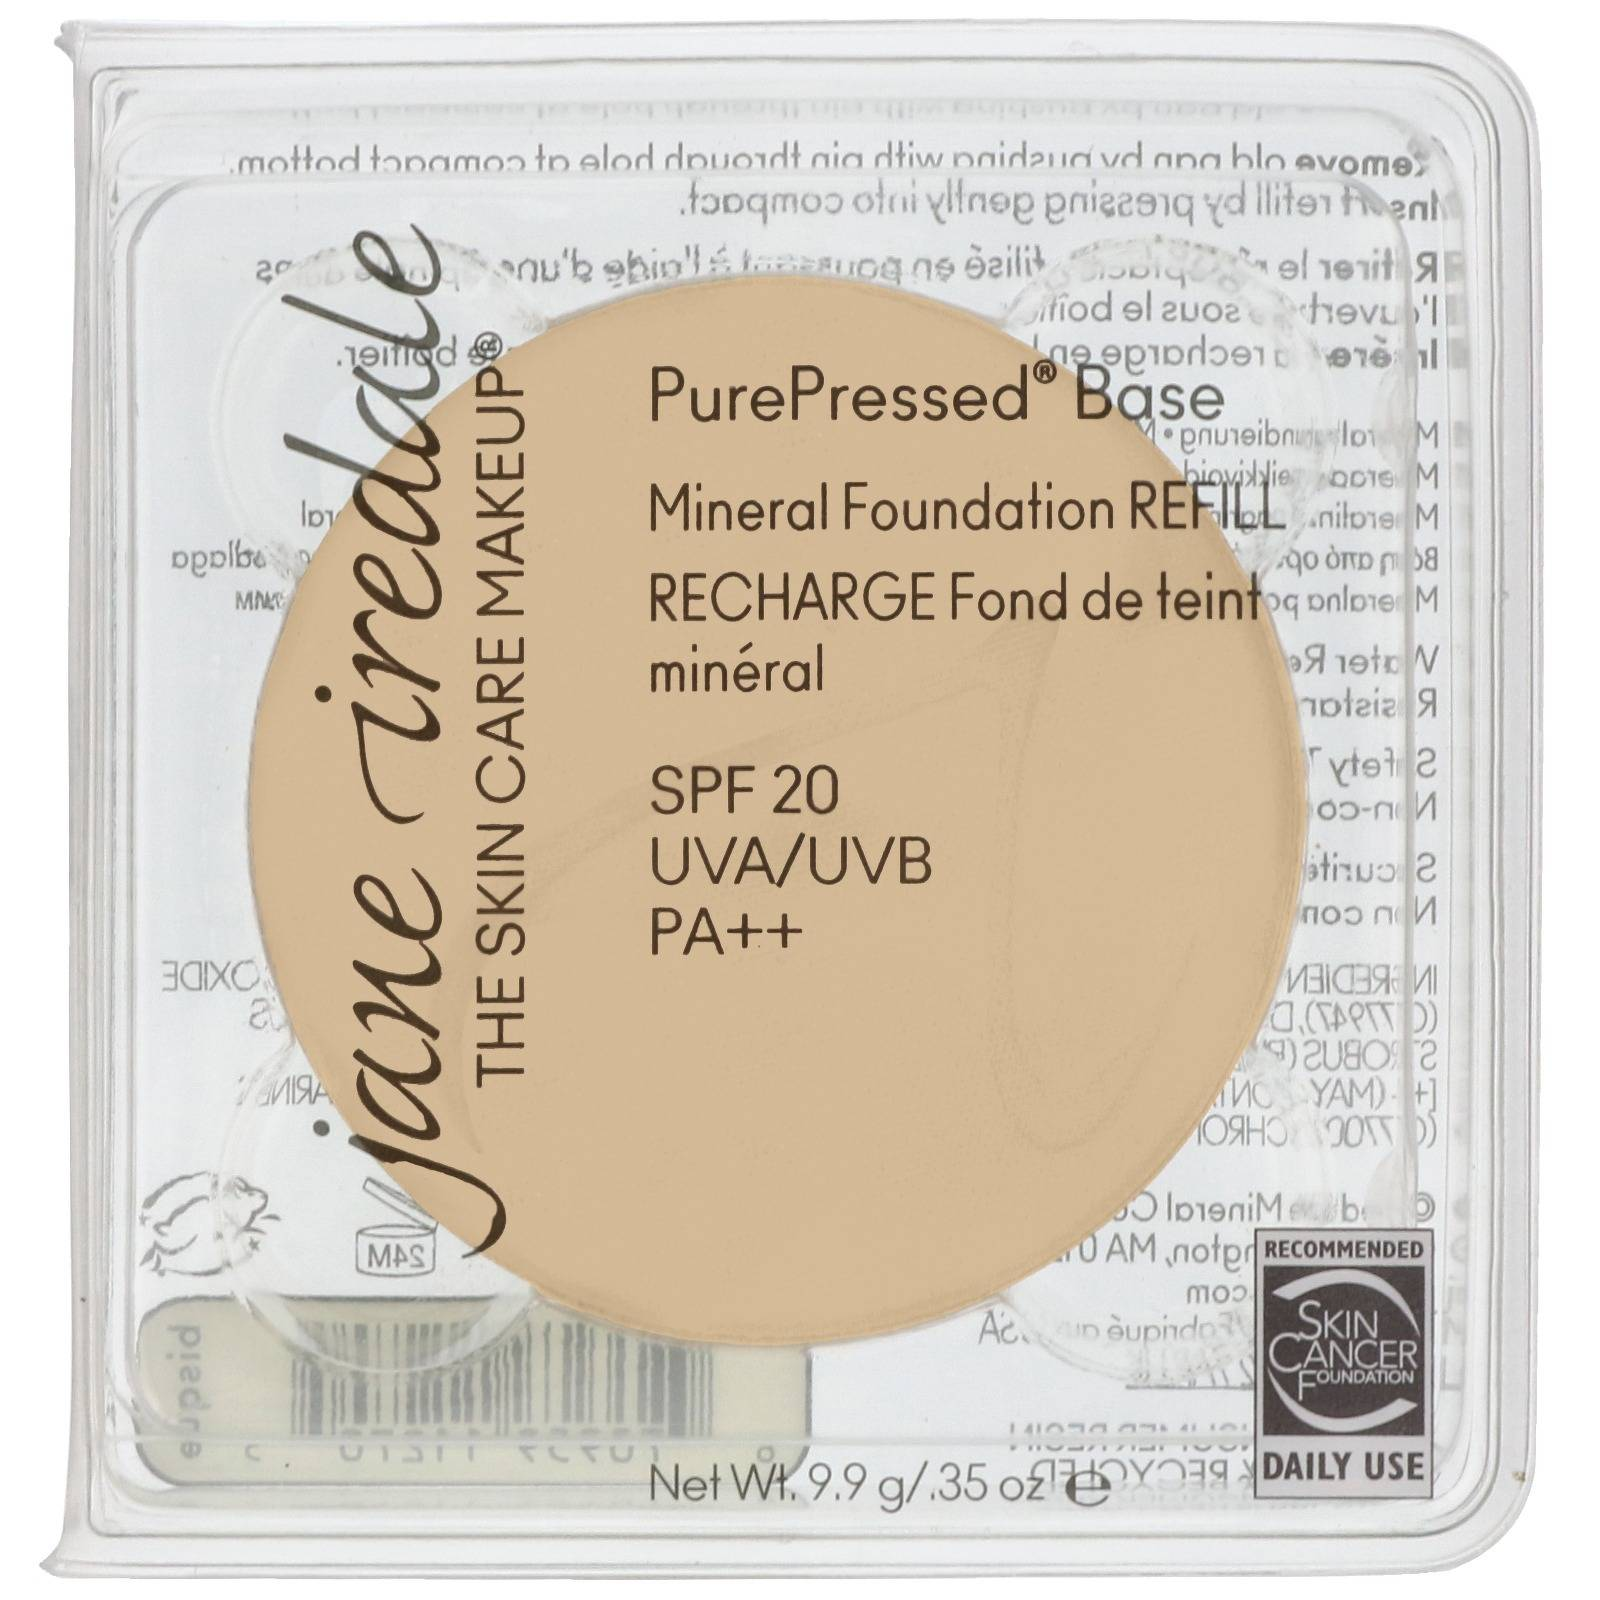 Jane Iredale - PurePressed Base ...